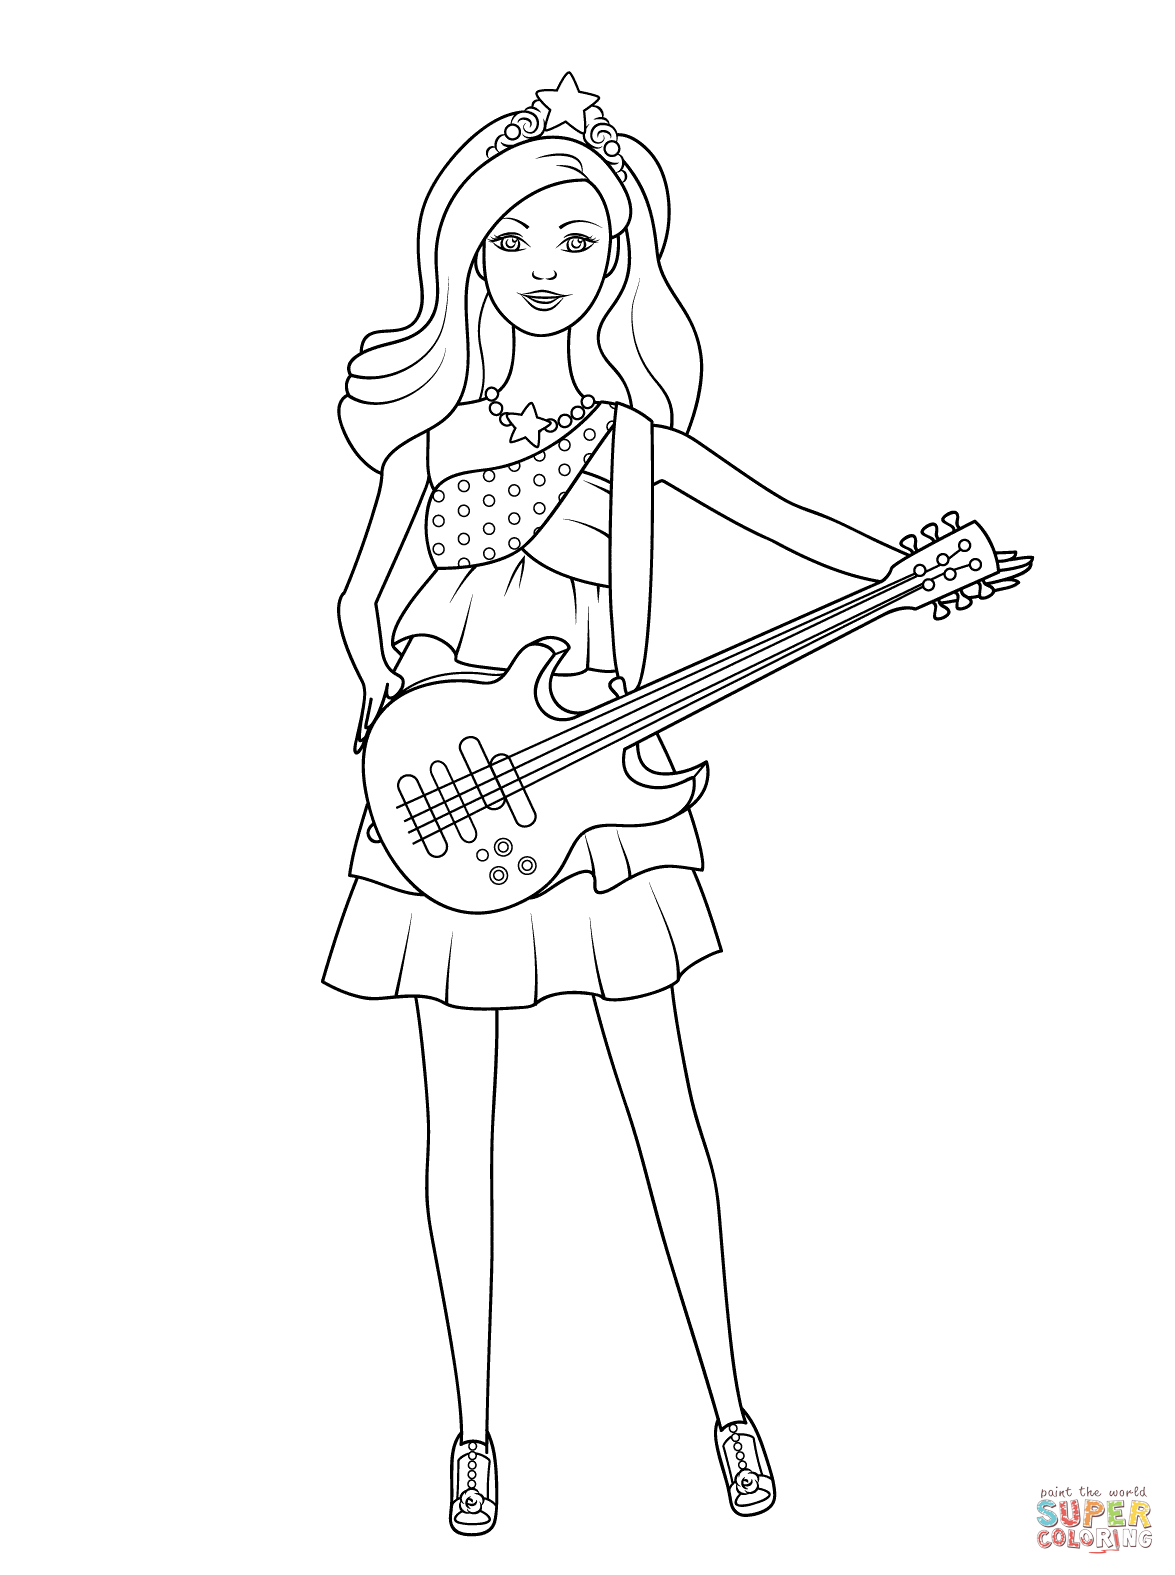 pop star colouring pages favour in fun pop star colouring sheets pop star colouring pages